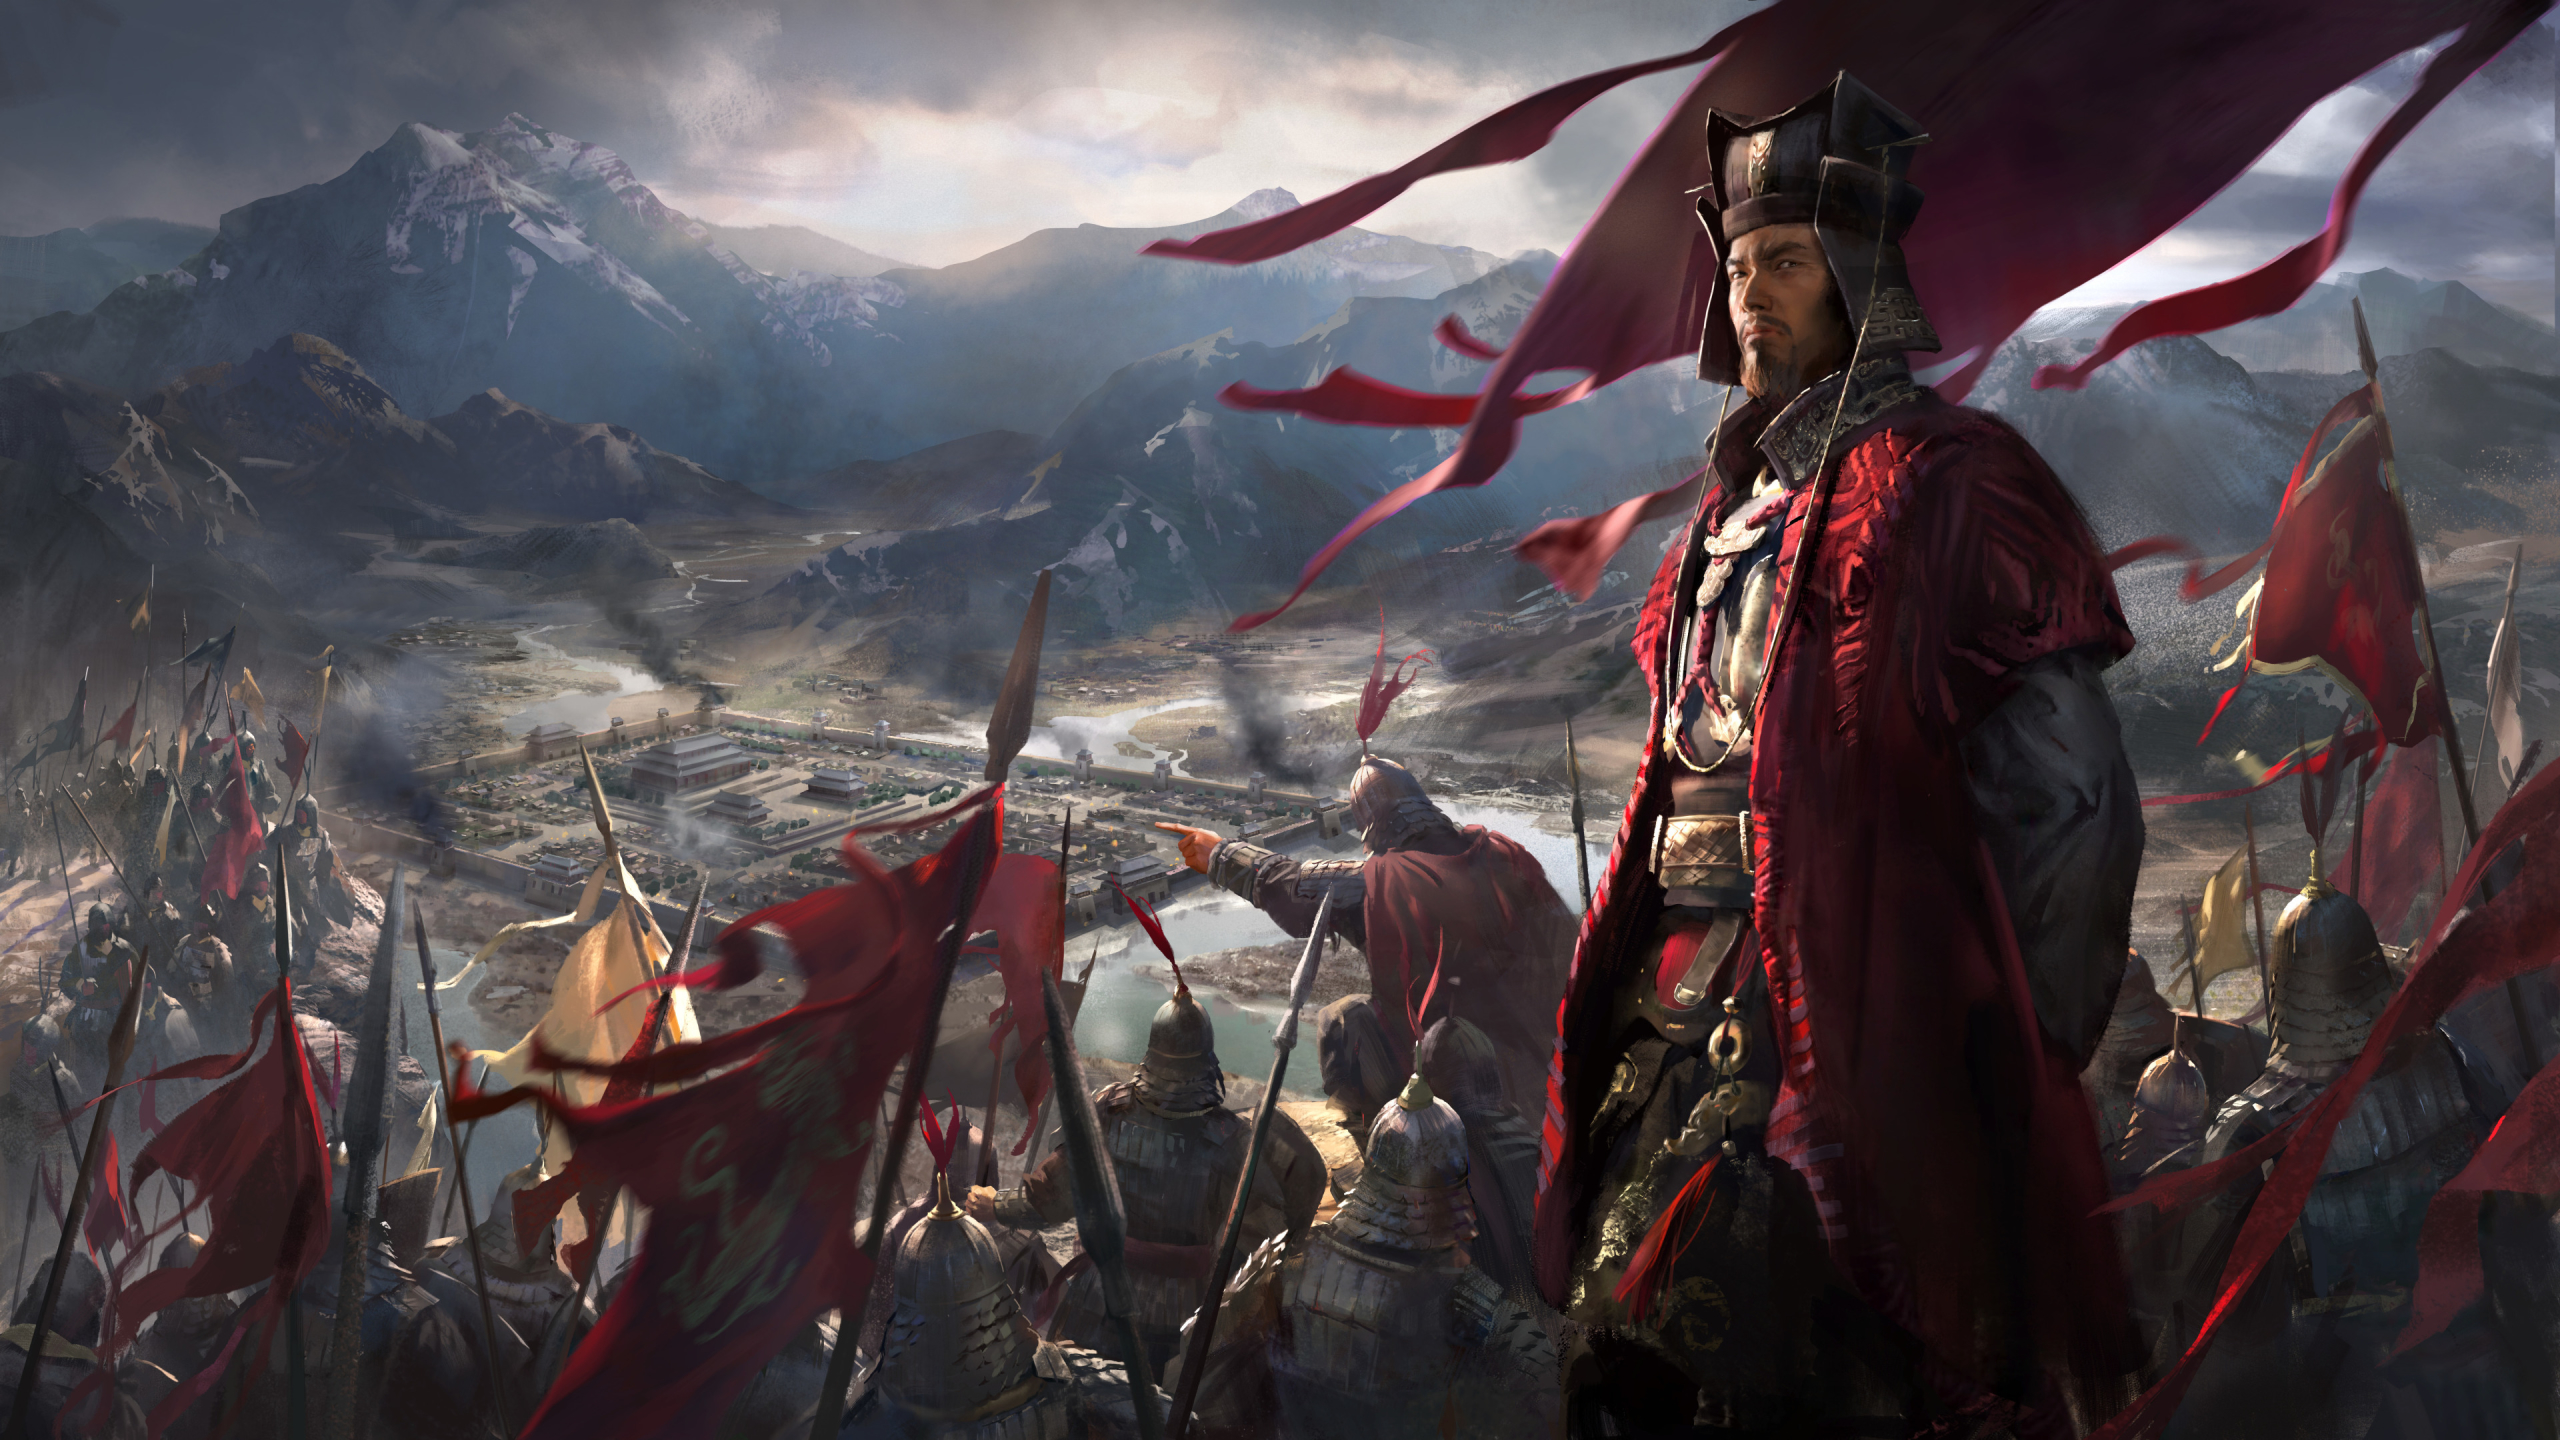 2560x1440 Total War Three Kingdoms 2019 Game 1440p Resolution